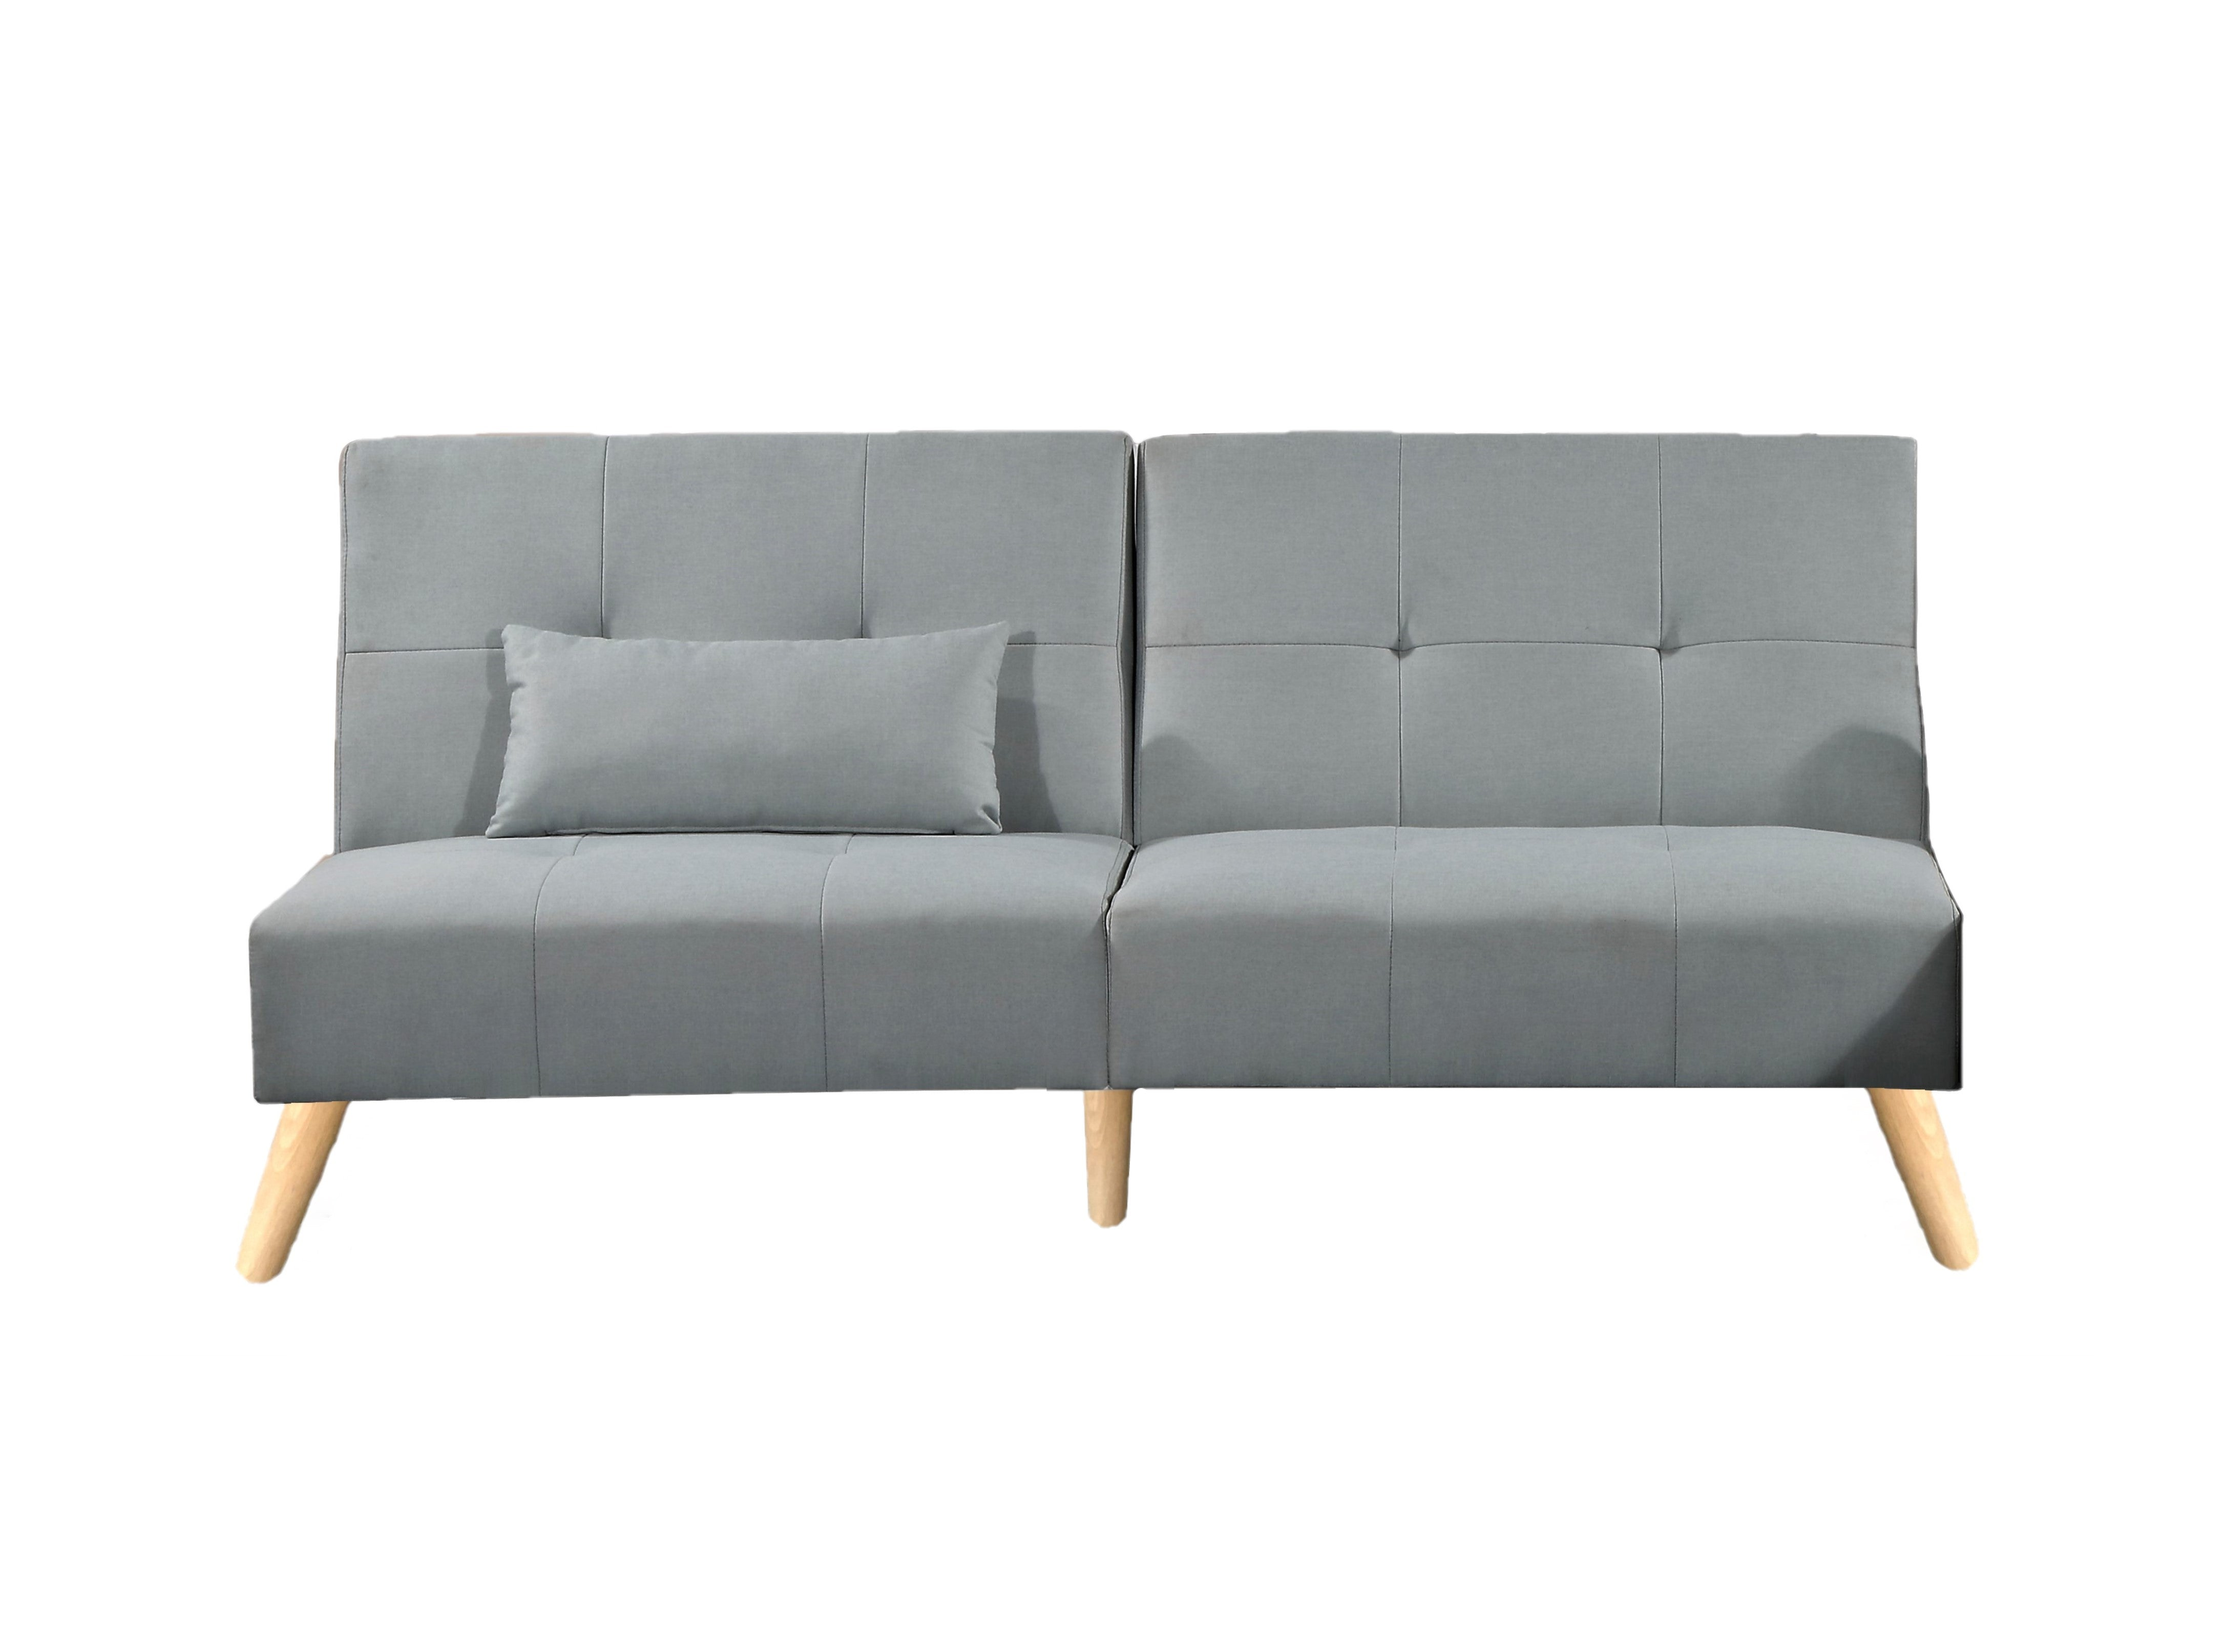 Sofabed Lounge Grey Fabric - Boston